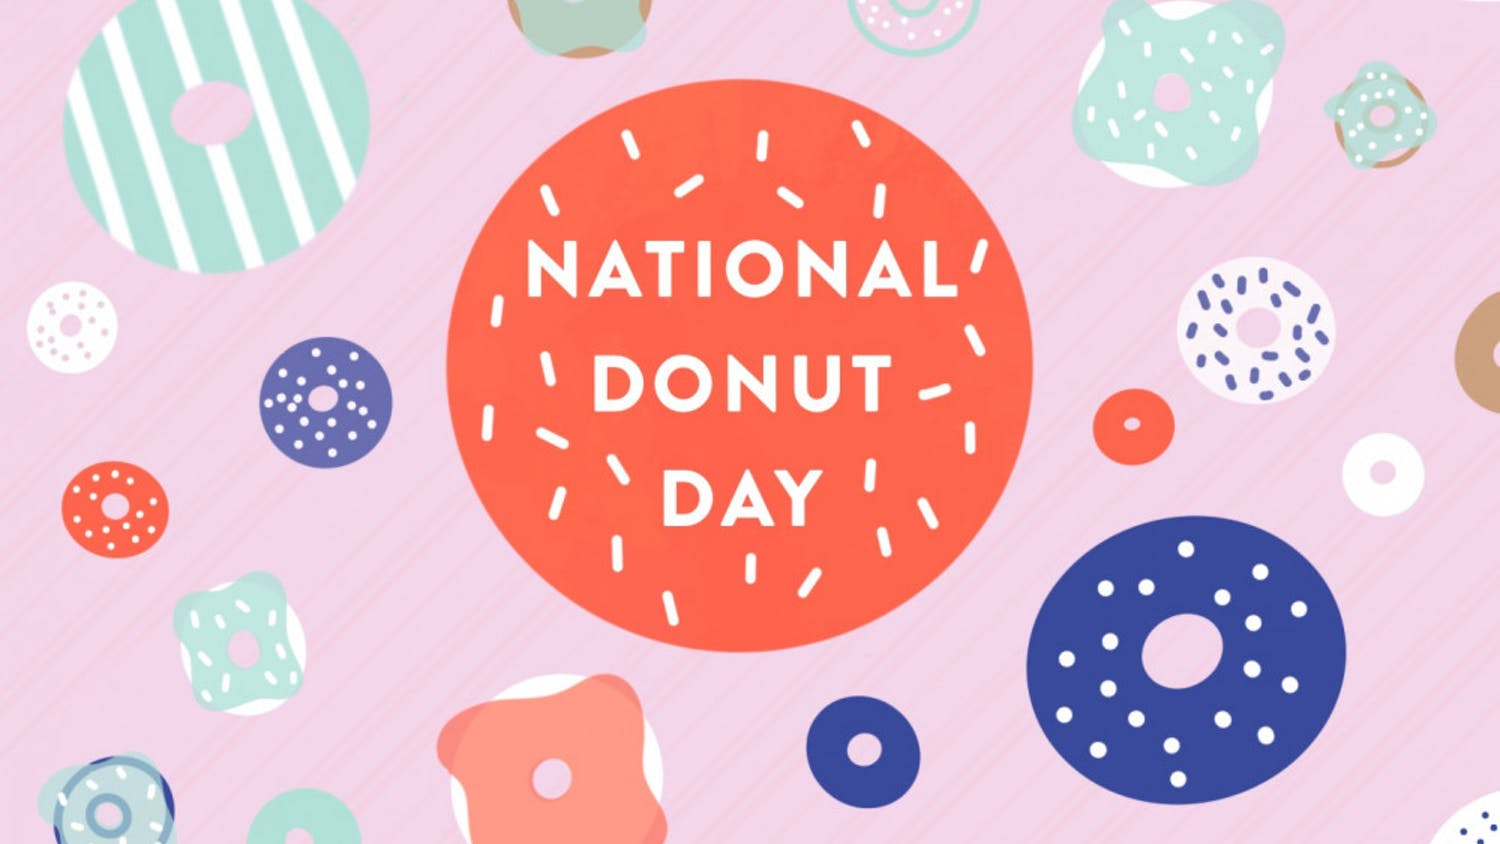 June 5 is National Doughnut Day— the Avenue put together a list of the best doughnuts and deals in town.